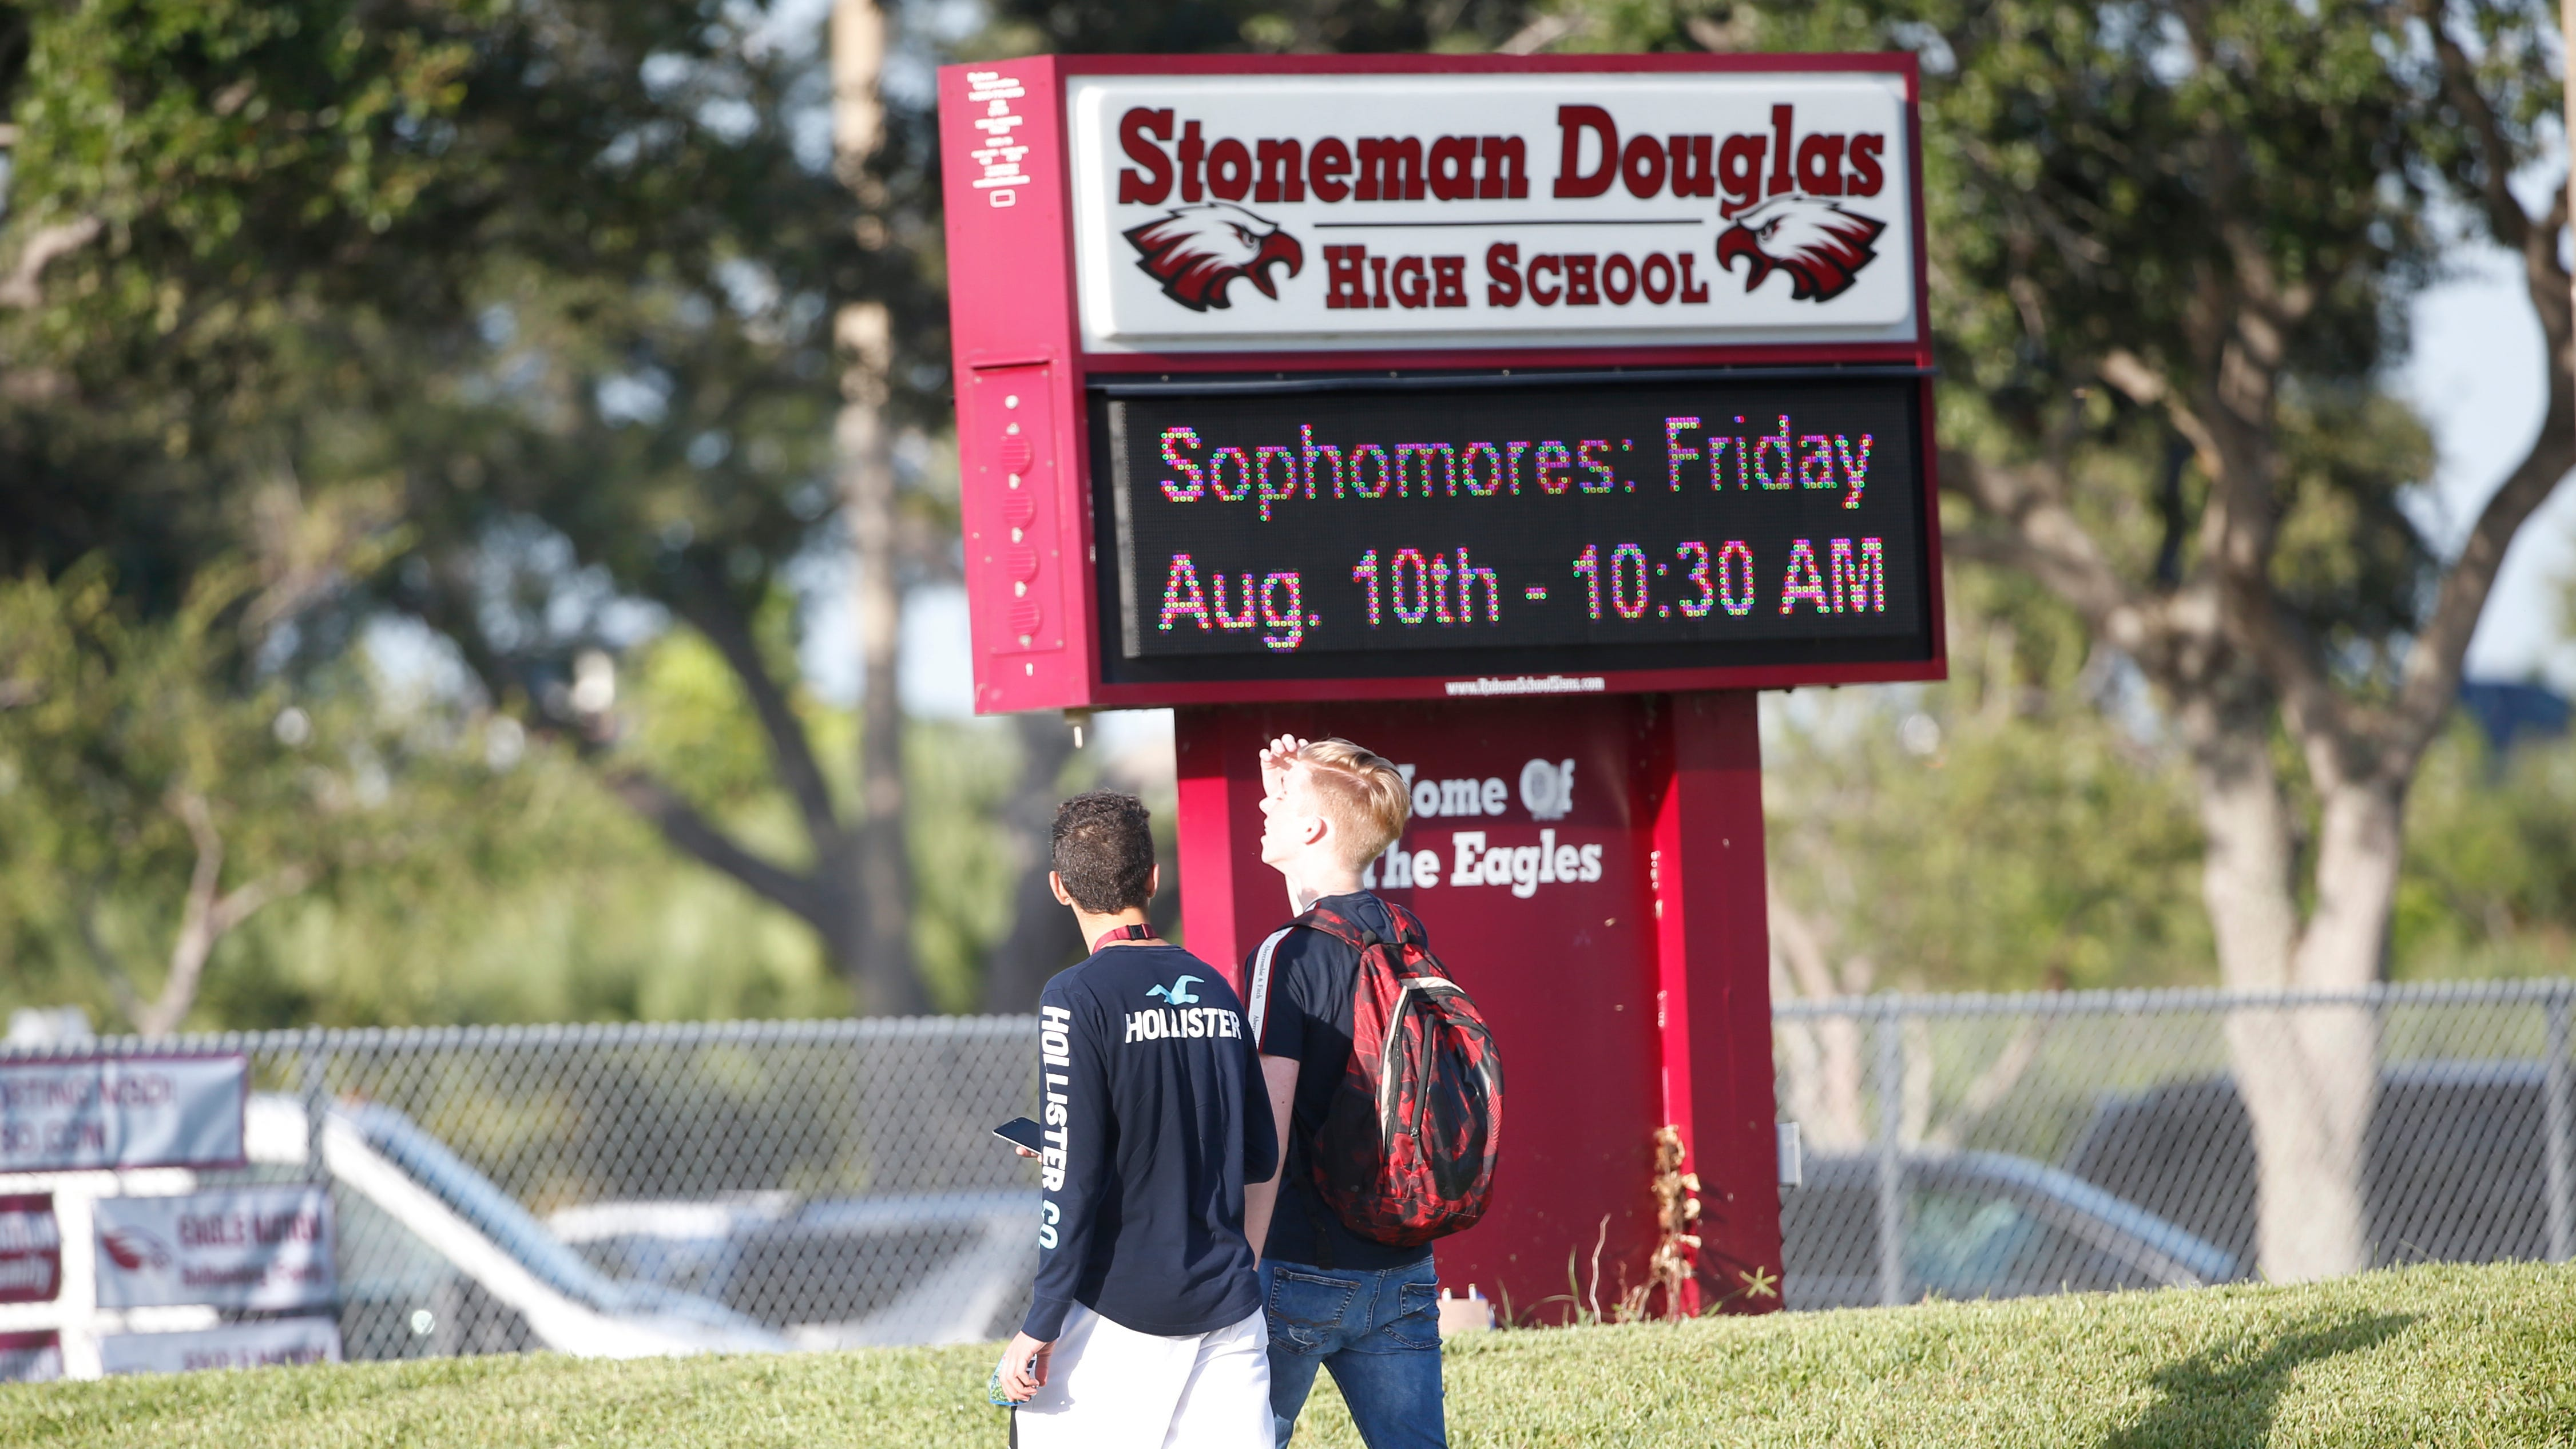 Students walk to class at Marjory Stoneman Douglas High School, Weds., Aug. 15, 2018, in Parkland, Fla. Students at the school returned Wednesday, to a more secure campus as they began their first new school year since a gunman killed 17 people in the freshman building.